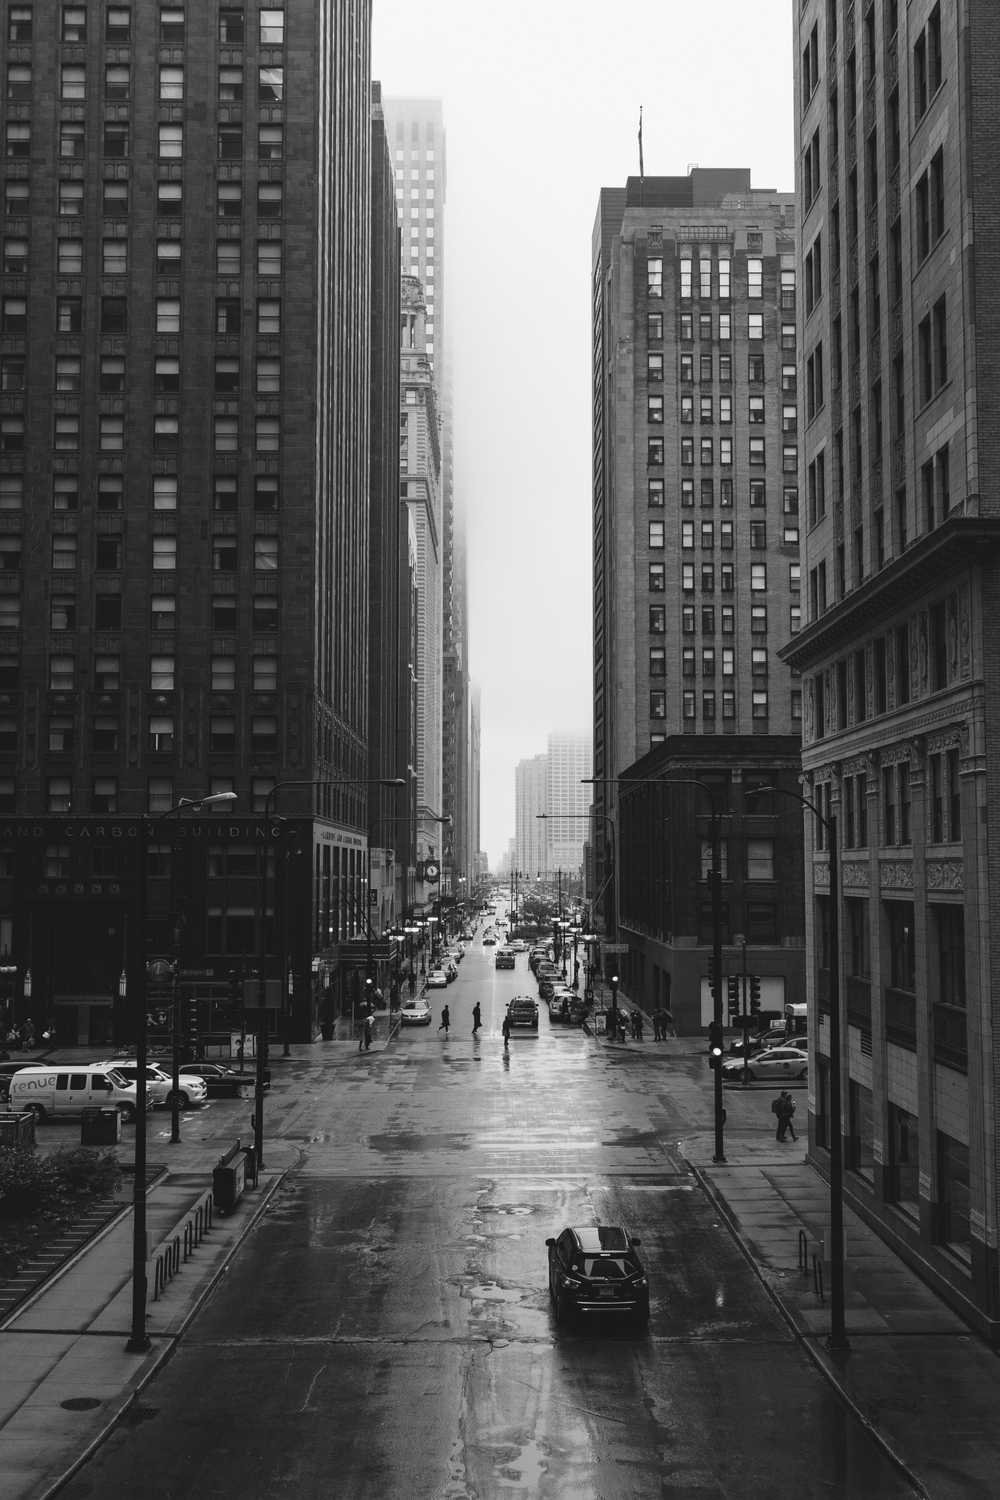 grayscale photo of city street